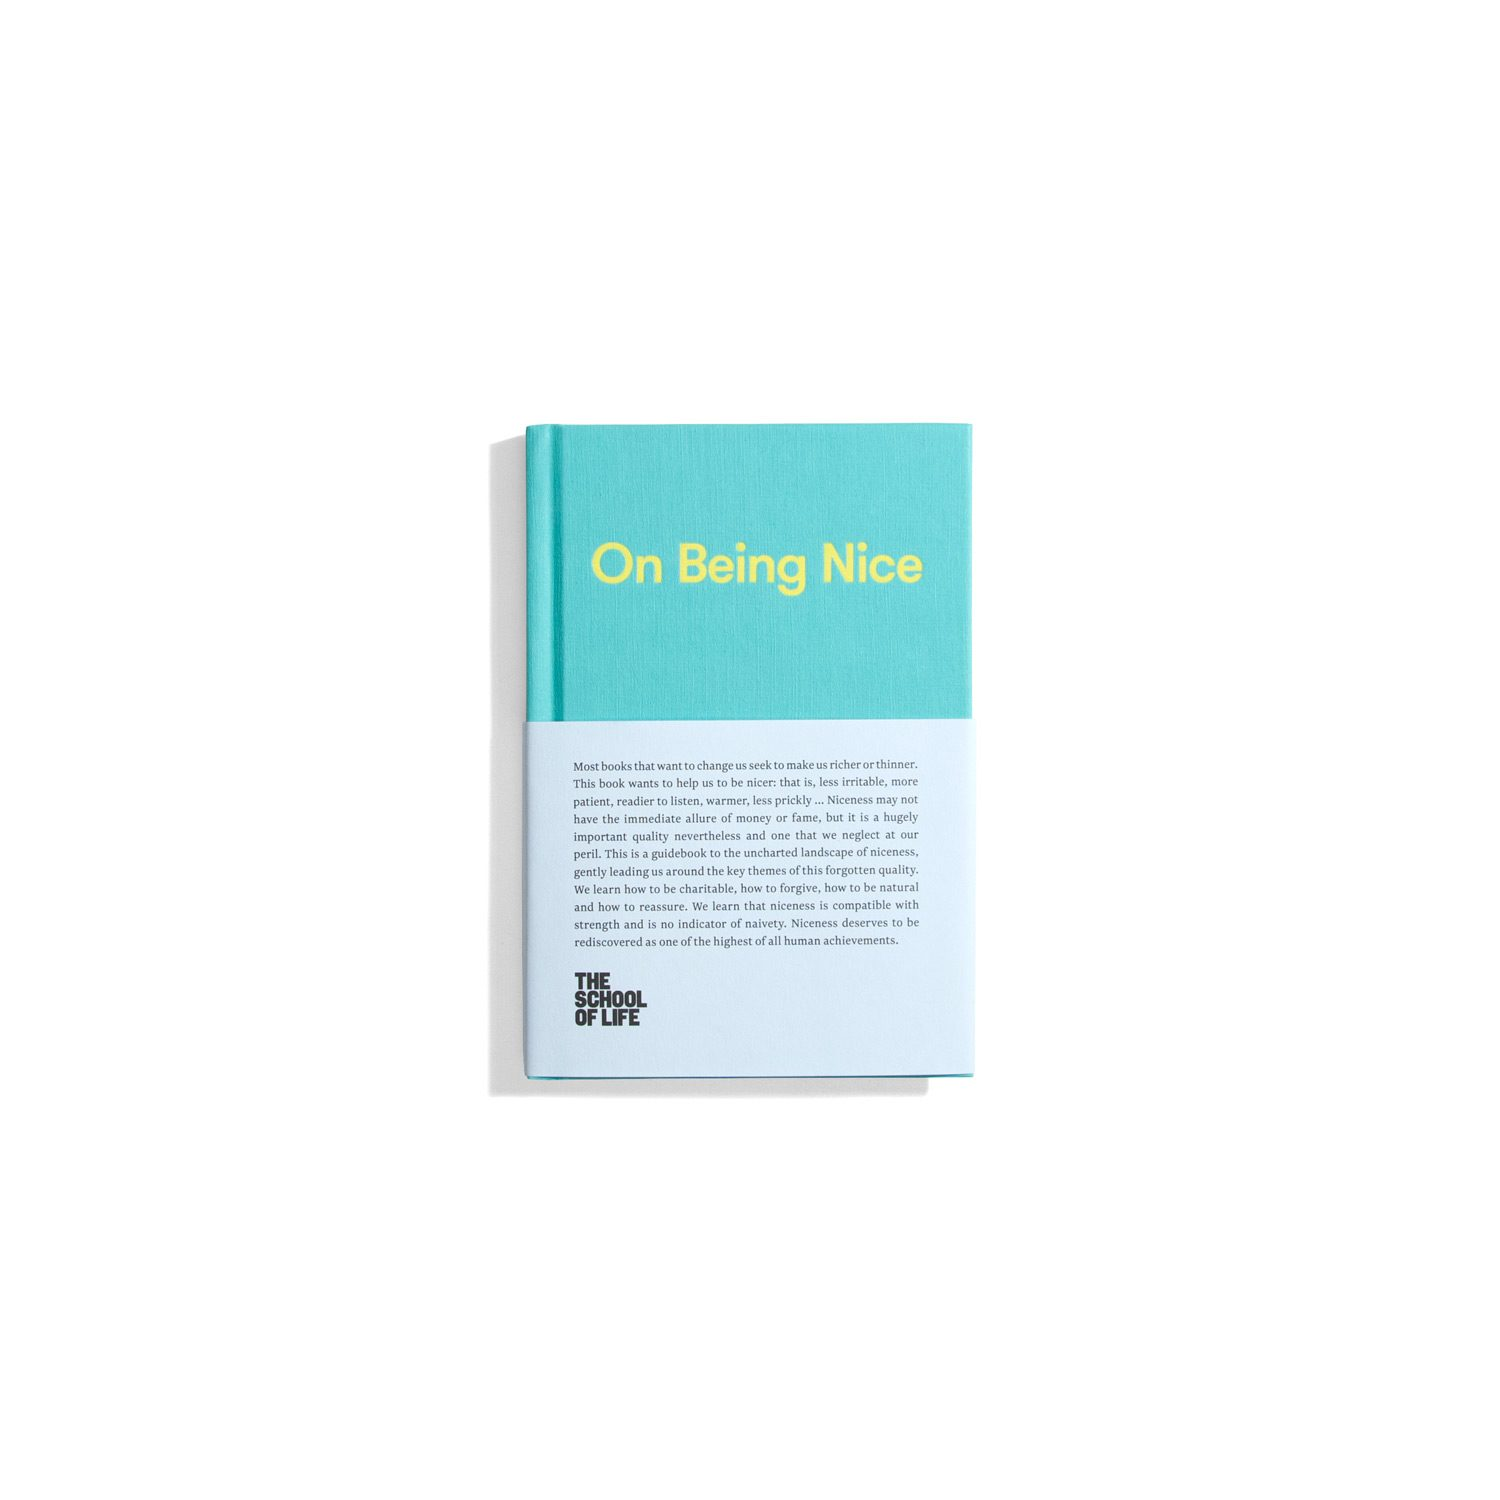 On Being Nice (The School of Life)